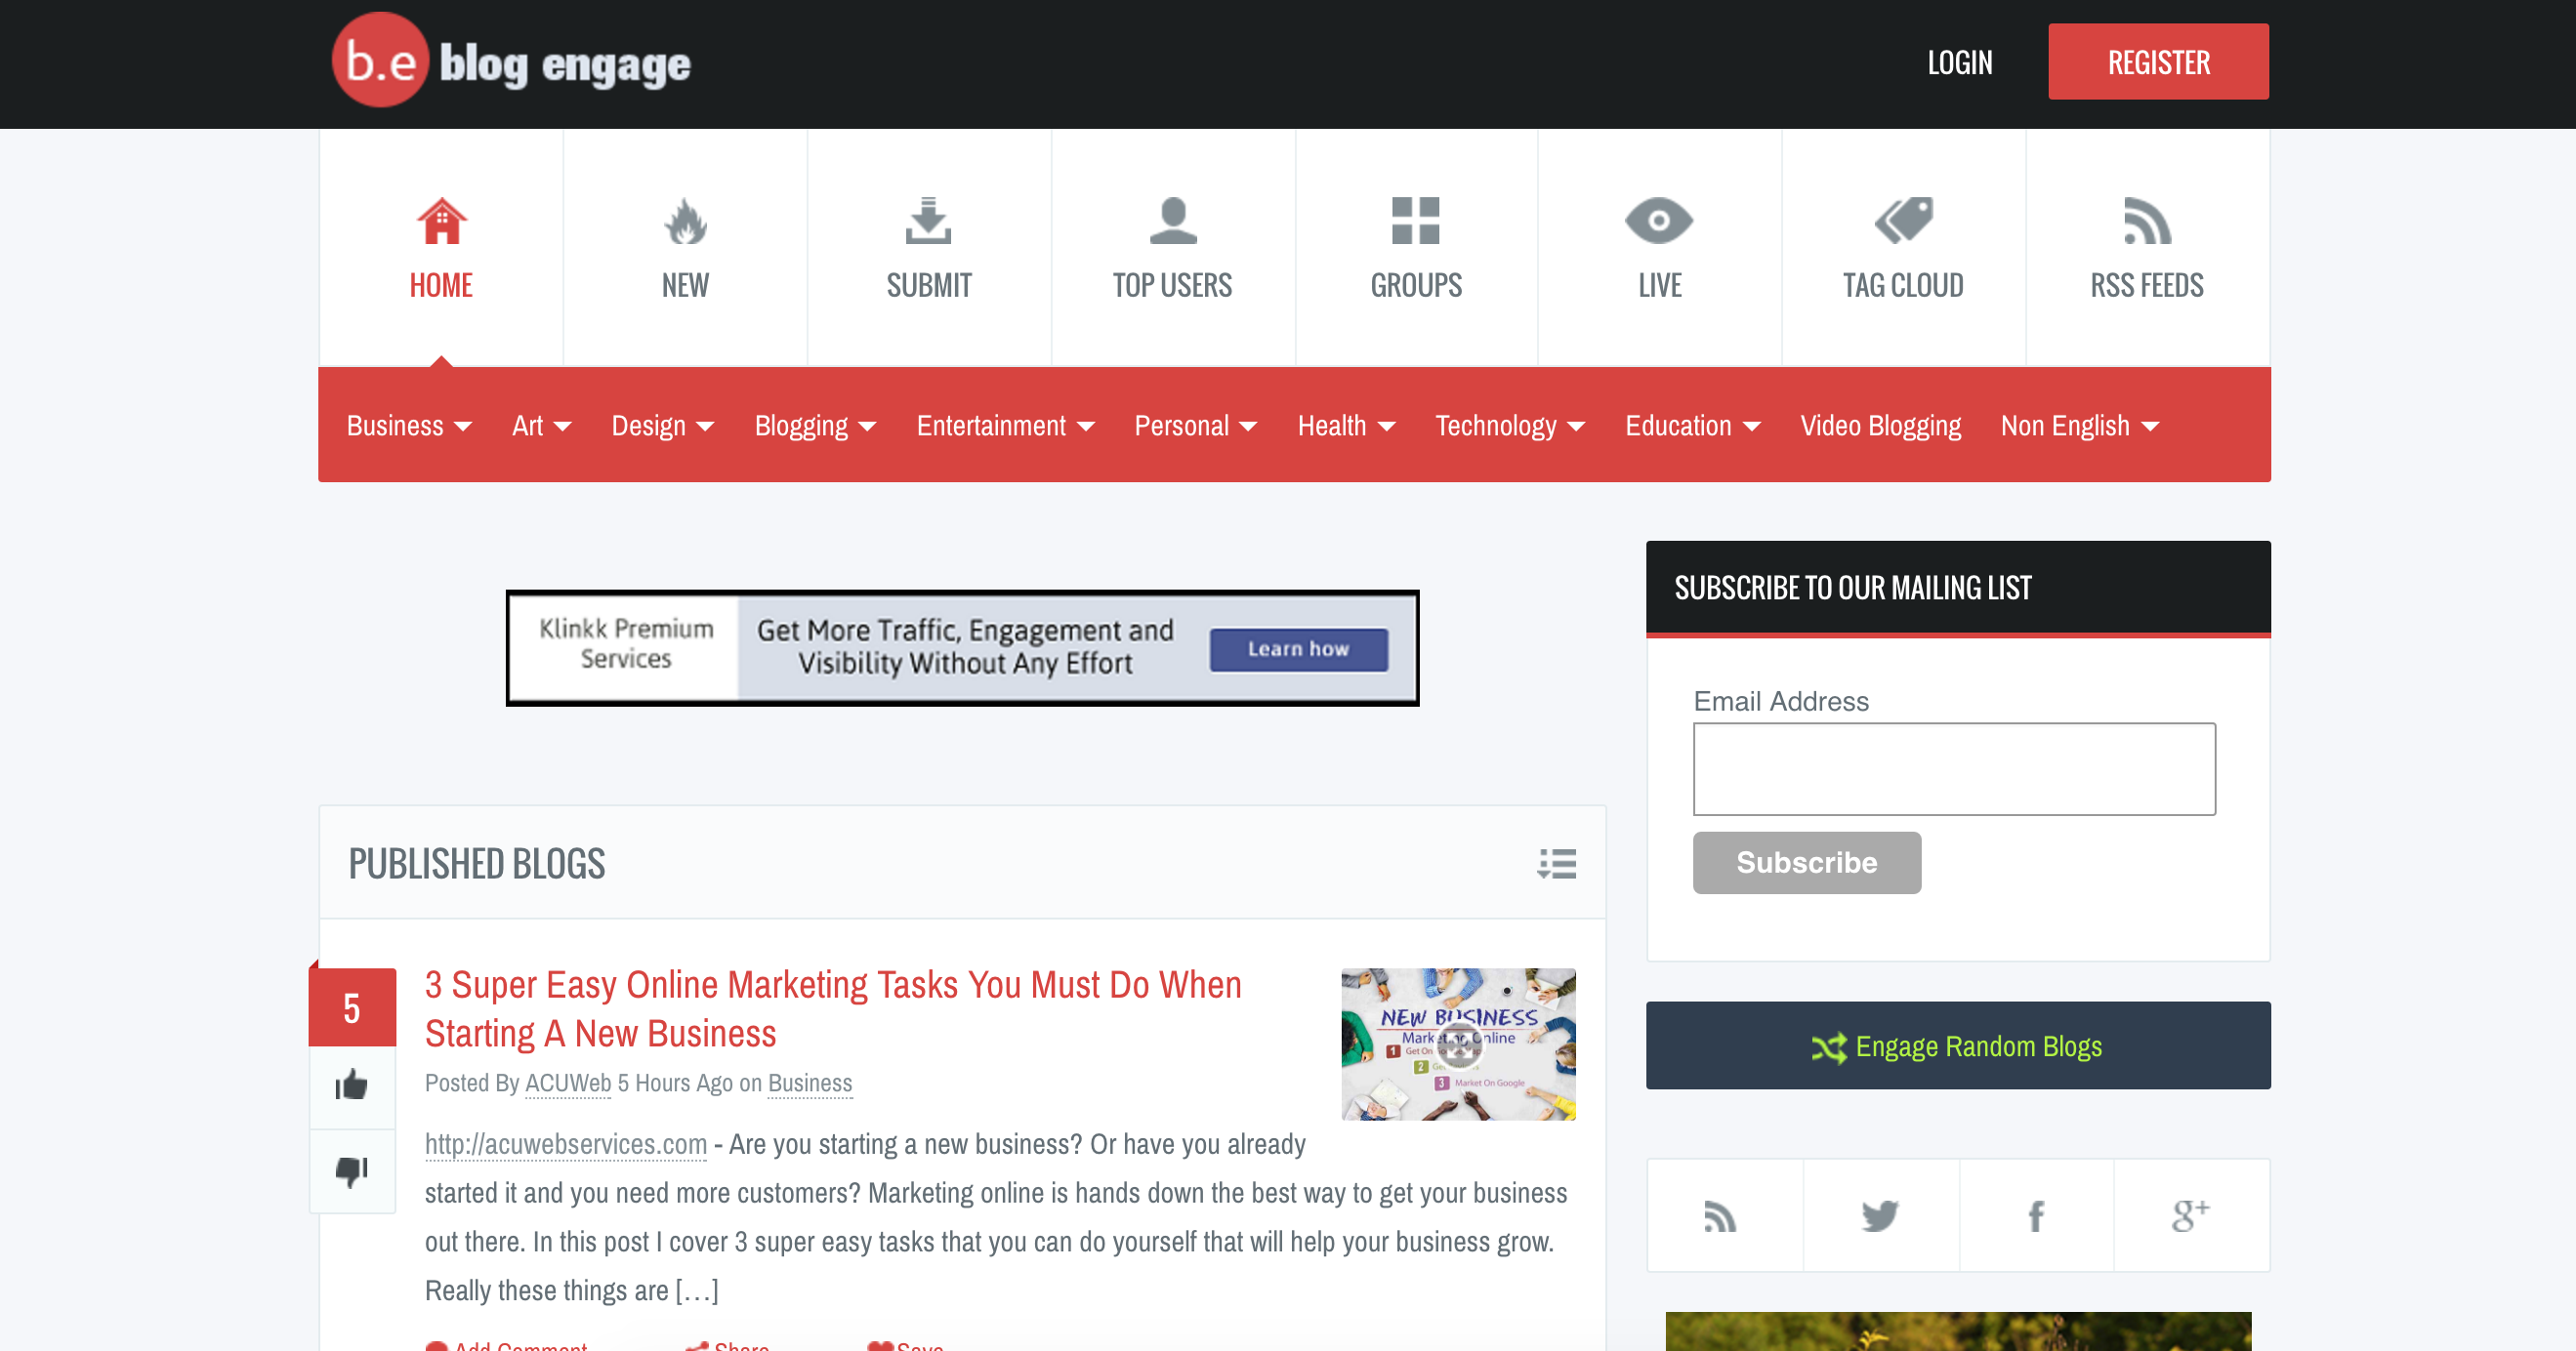 54 Guest Posting Sites You Should Submit To For More Organic